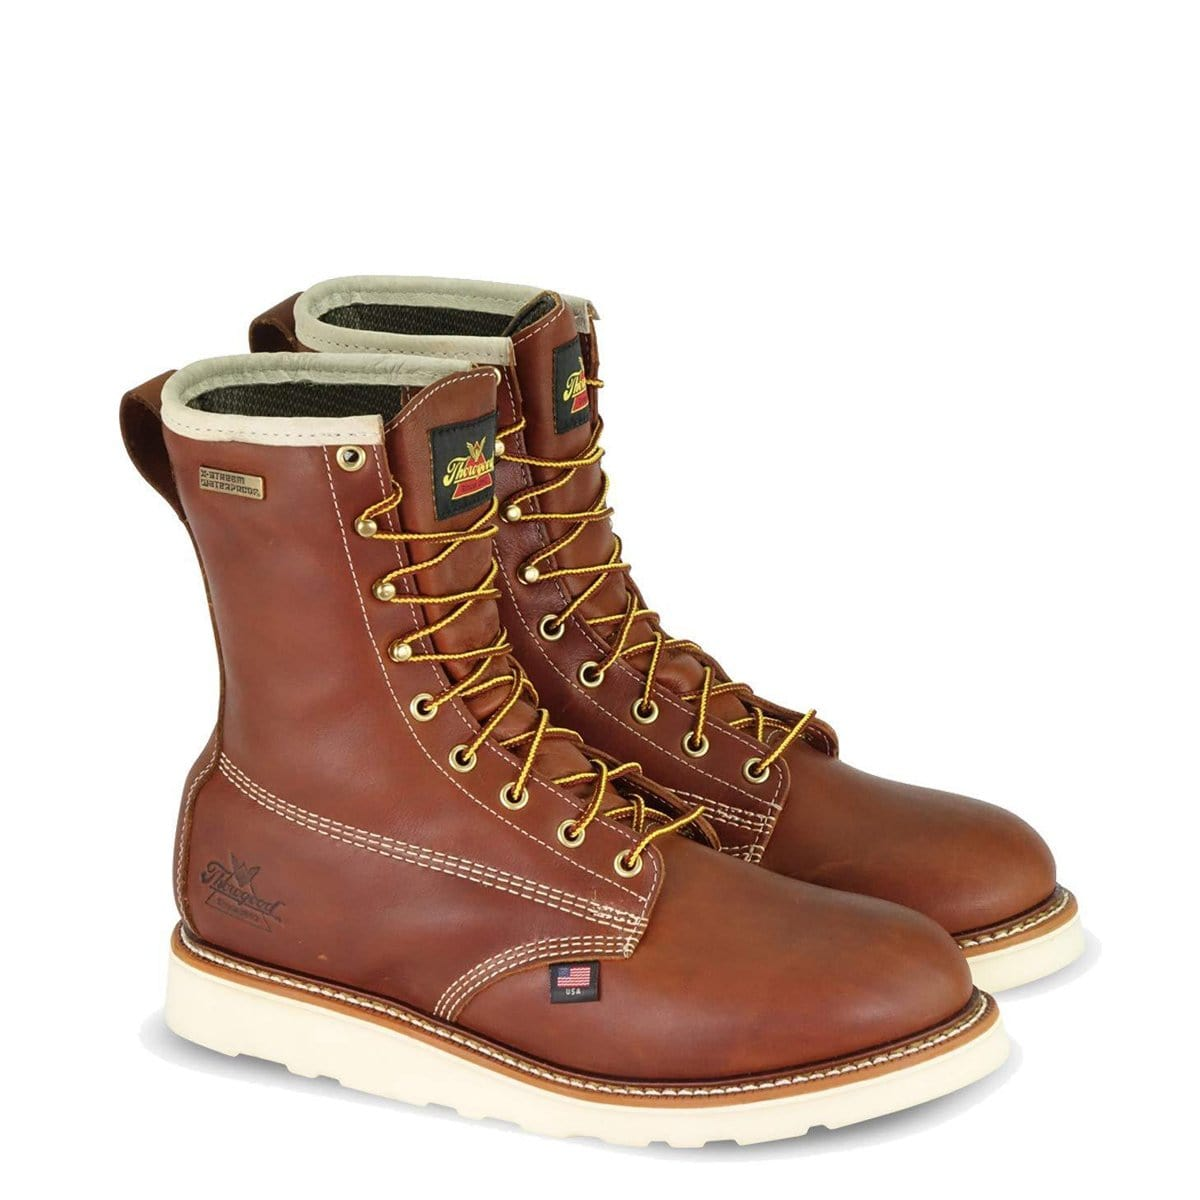 Thorogood American Heritage 8in Round Toe, MAXWear Wedge Waterproof Non-Safety Insulated Work Boots 814-4009